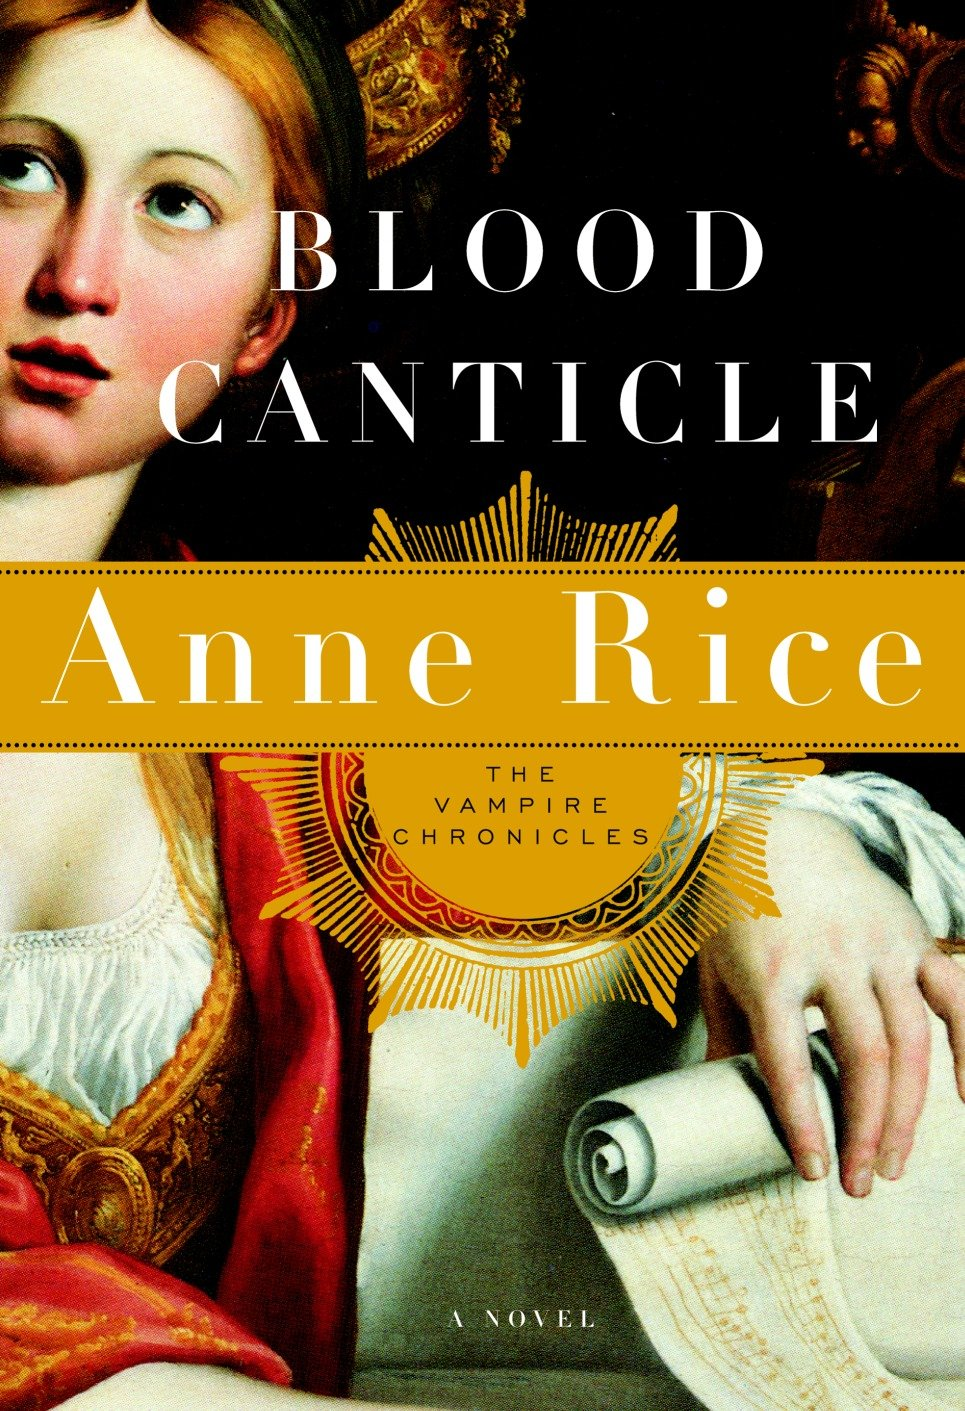 Blood Canticle The Vampire Chronicles